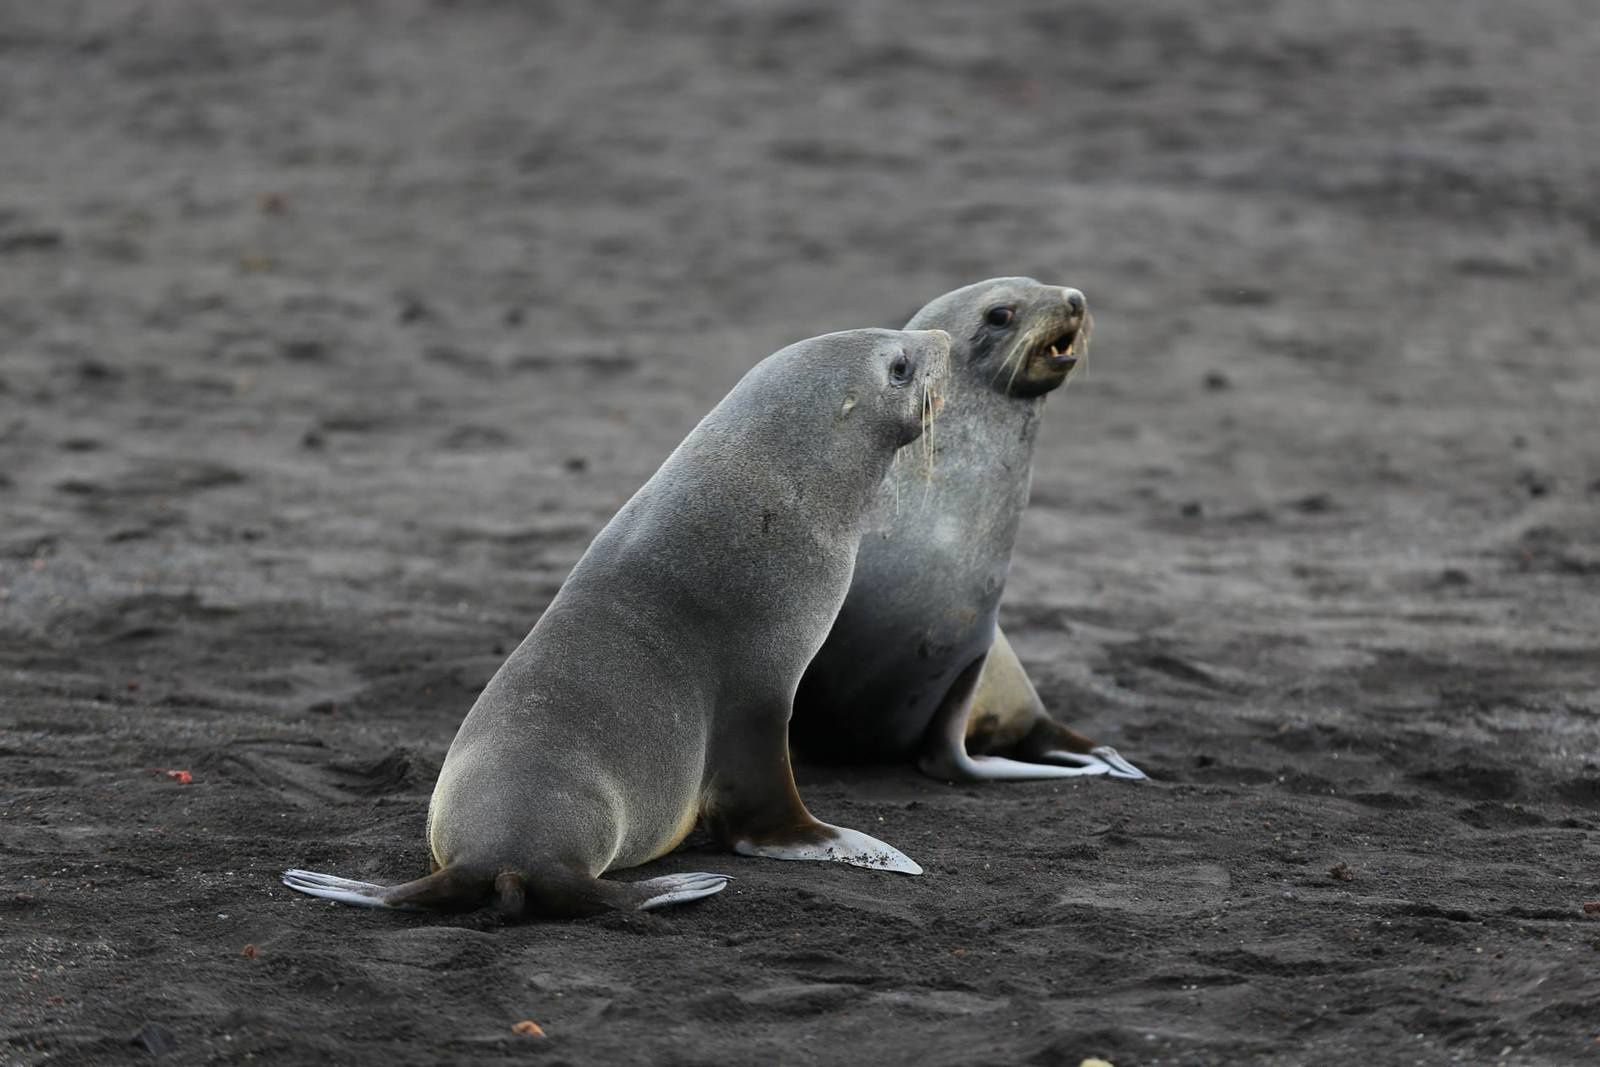 Deception Island - South American sea lion - Otaria flavescens - photo Antony Van Eeten 03.2014